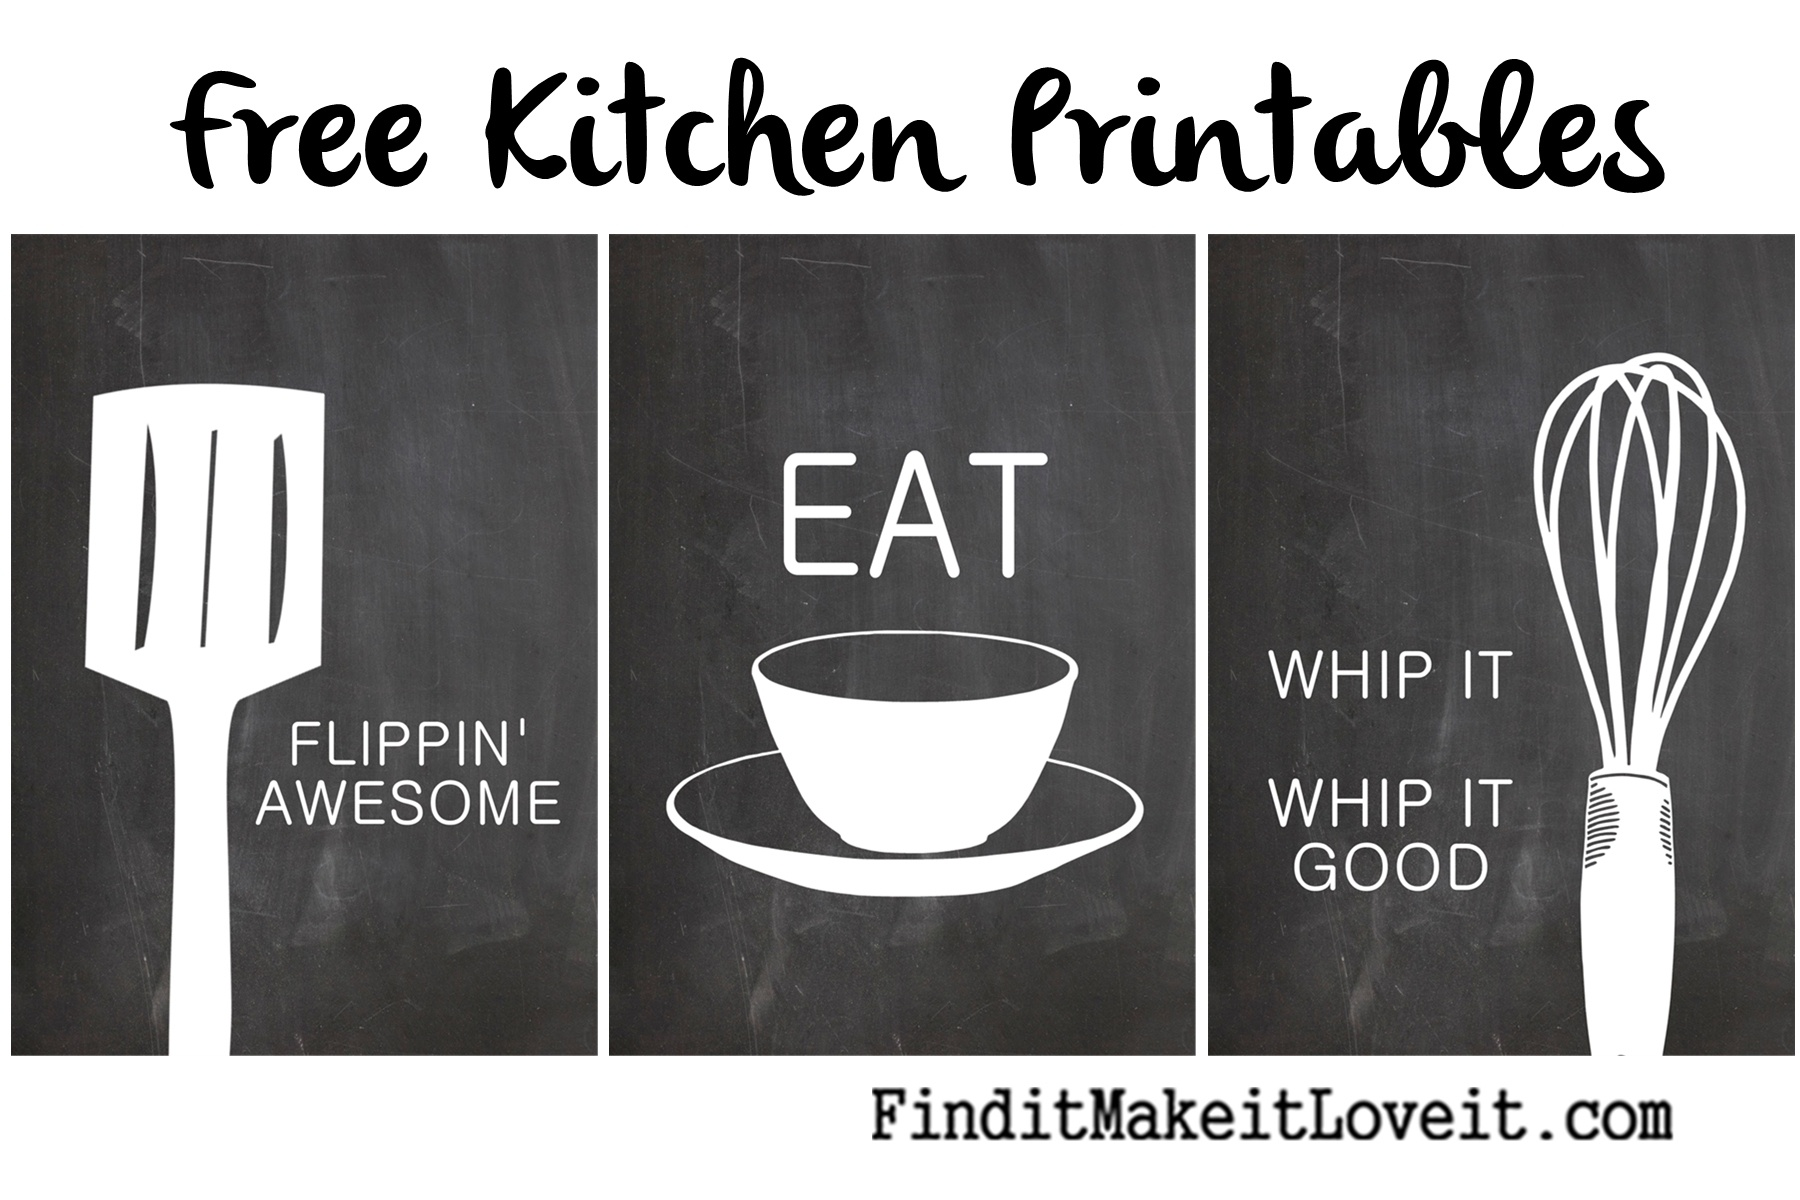 Free Kitchen Printables - Find It, Make It, Love It - Free Kitchen Printables